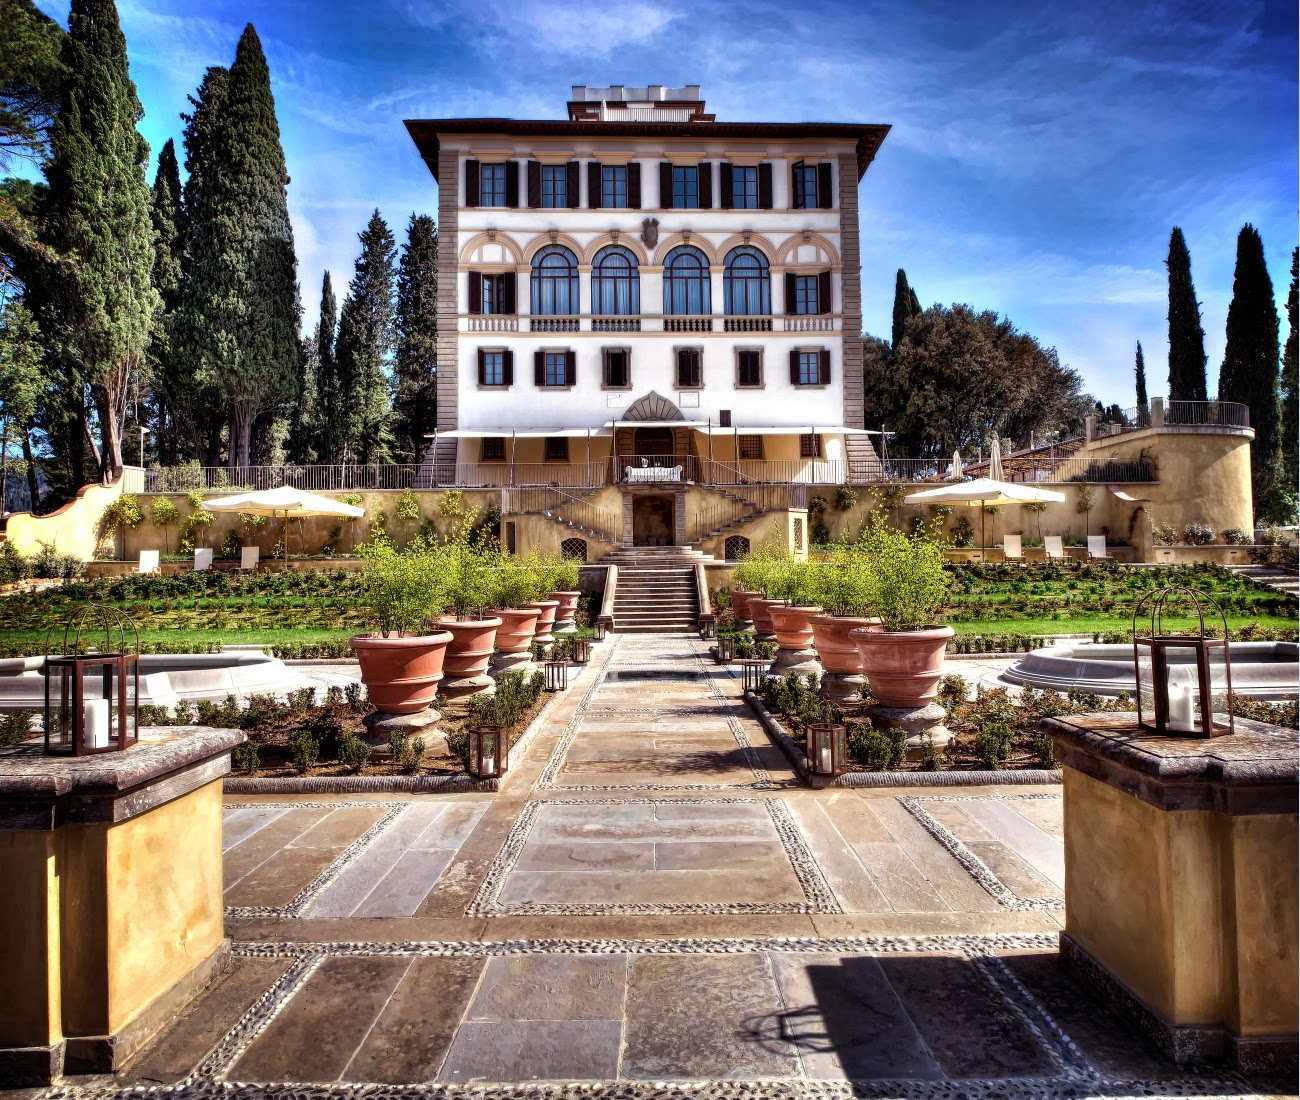 Florence Tuscany: Kee Hua Chee Live!: IL SALVIATINO IN FLORENCE, ITALY